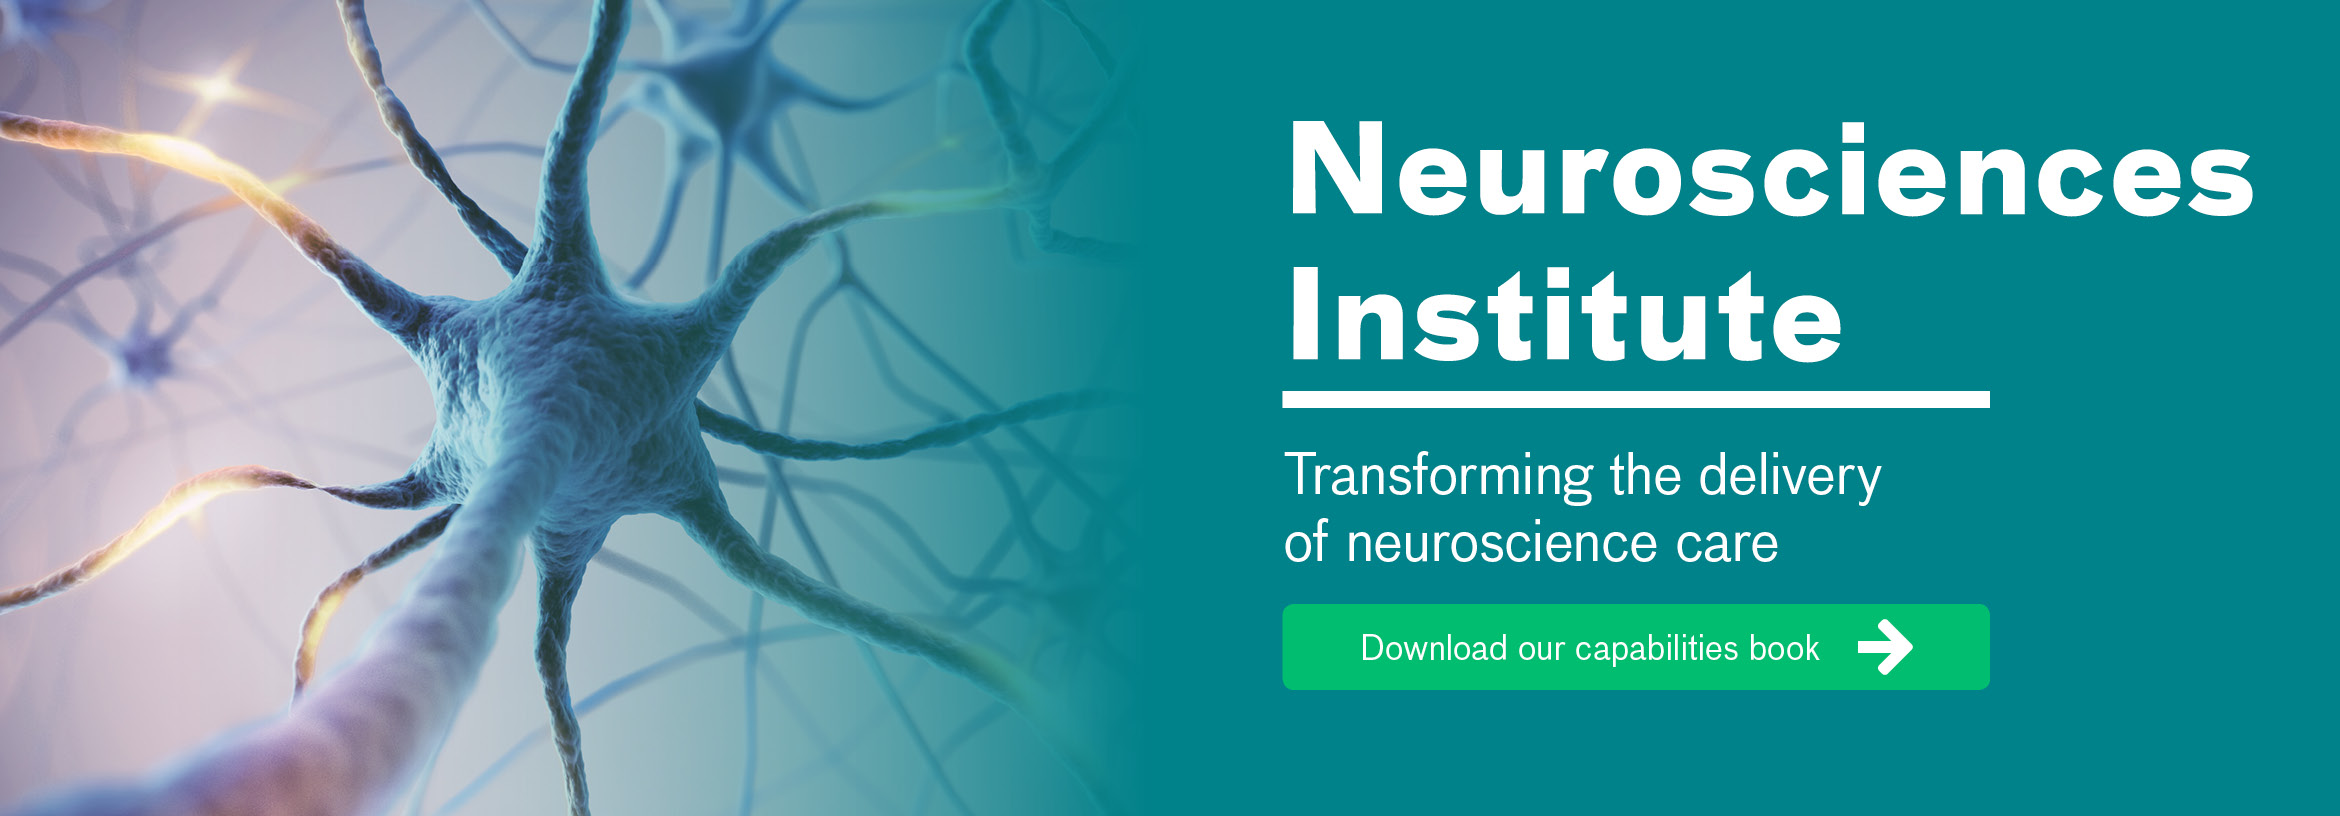 Neuroscience Experts | Neurosciences Institute